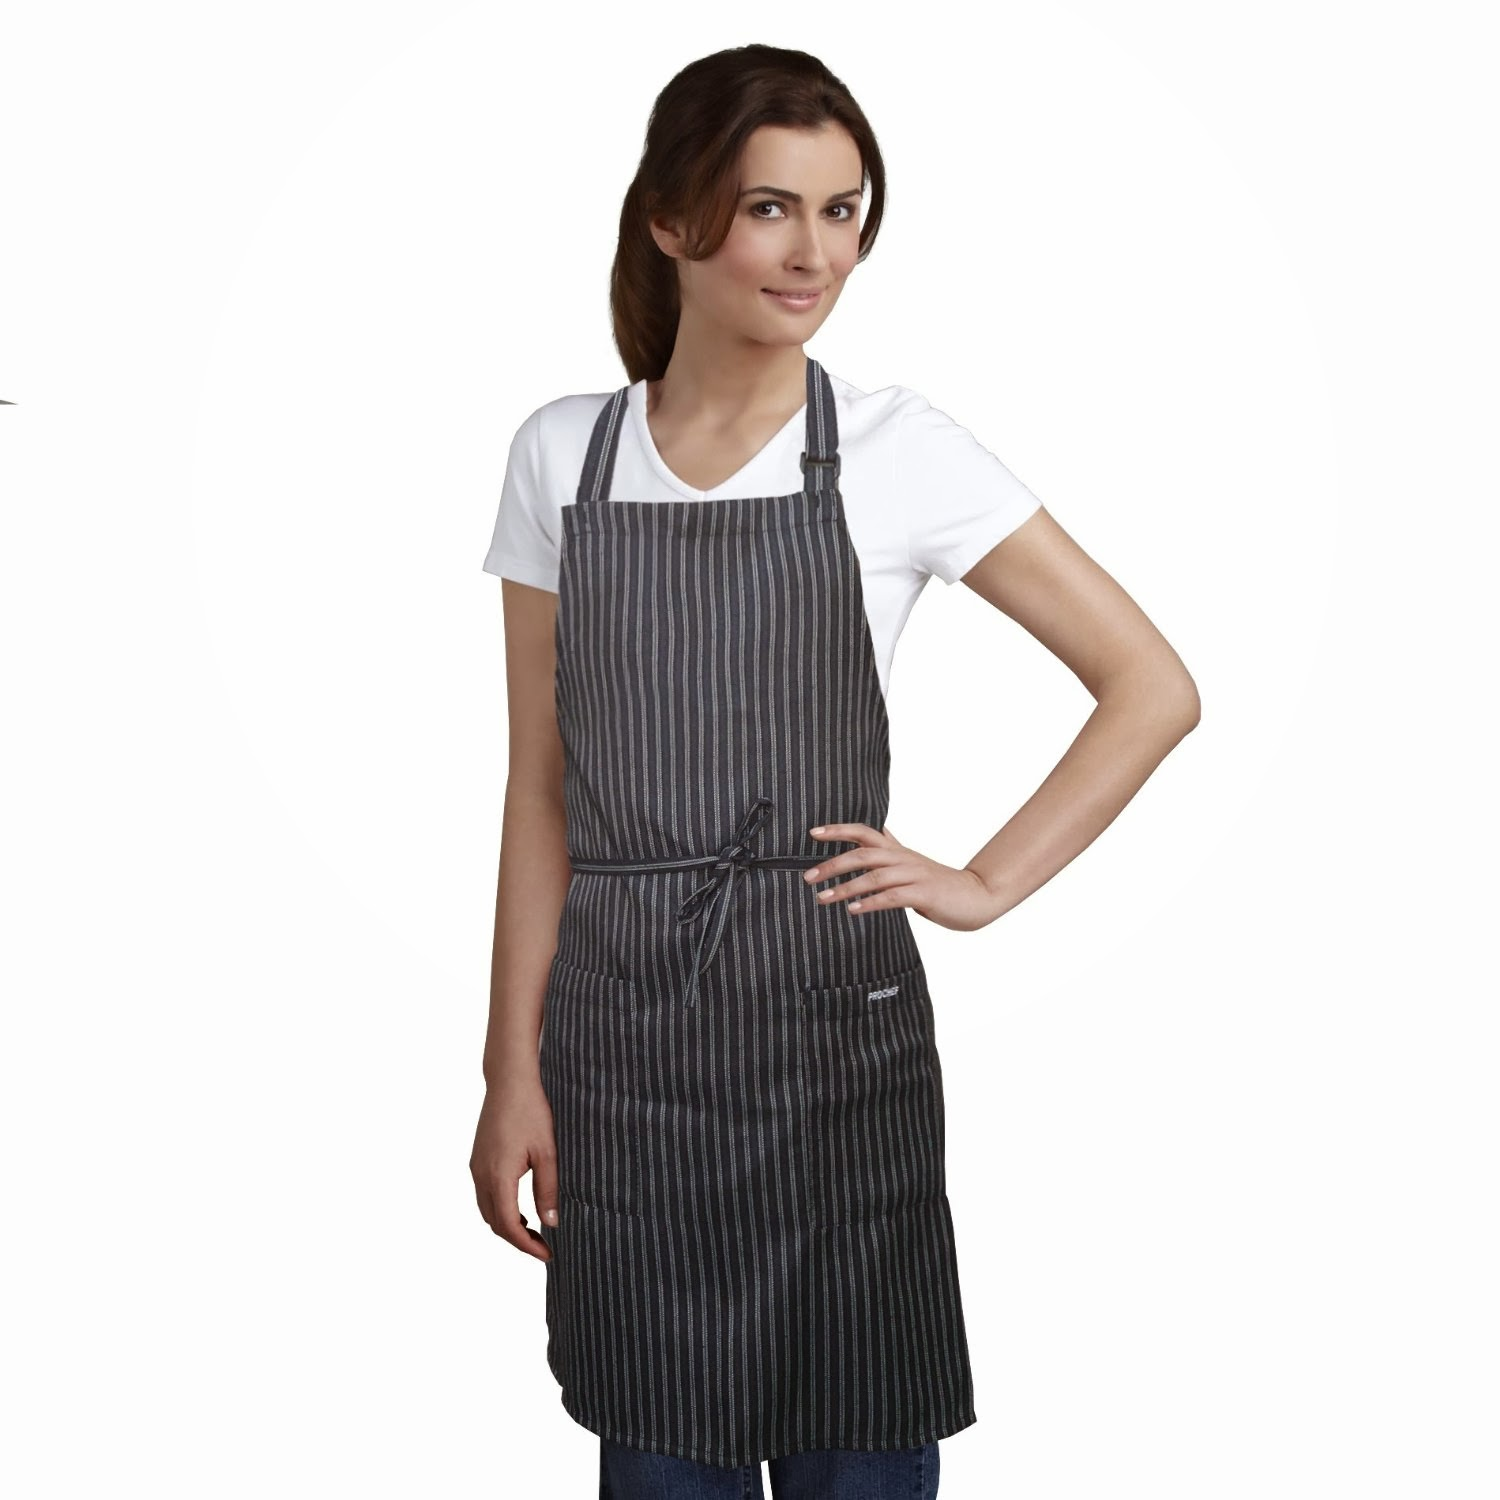 Apron For Kitchen : Kitchen Aprons For Women Why You Should Use One Kitchen Aprons For ...